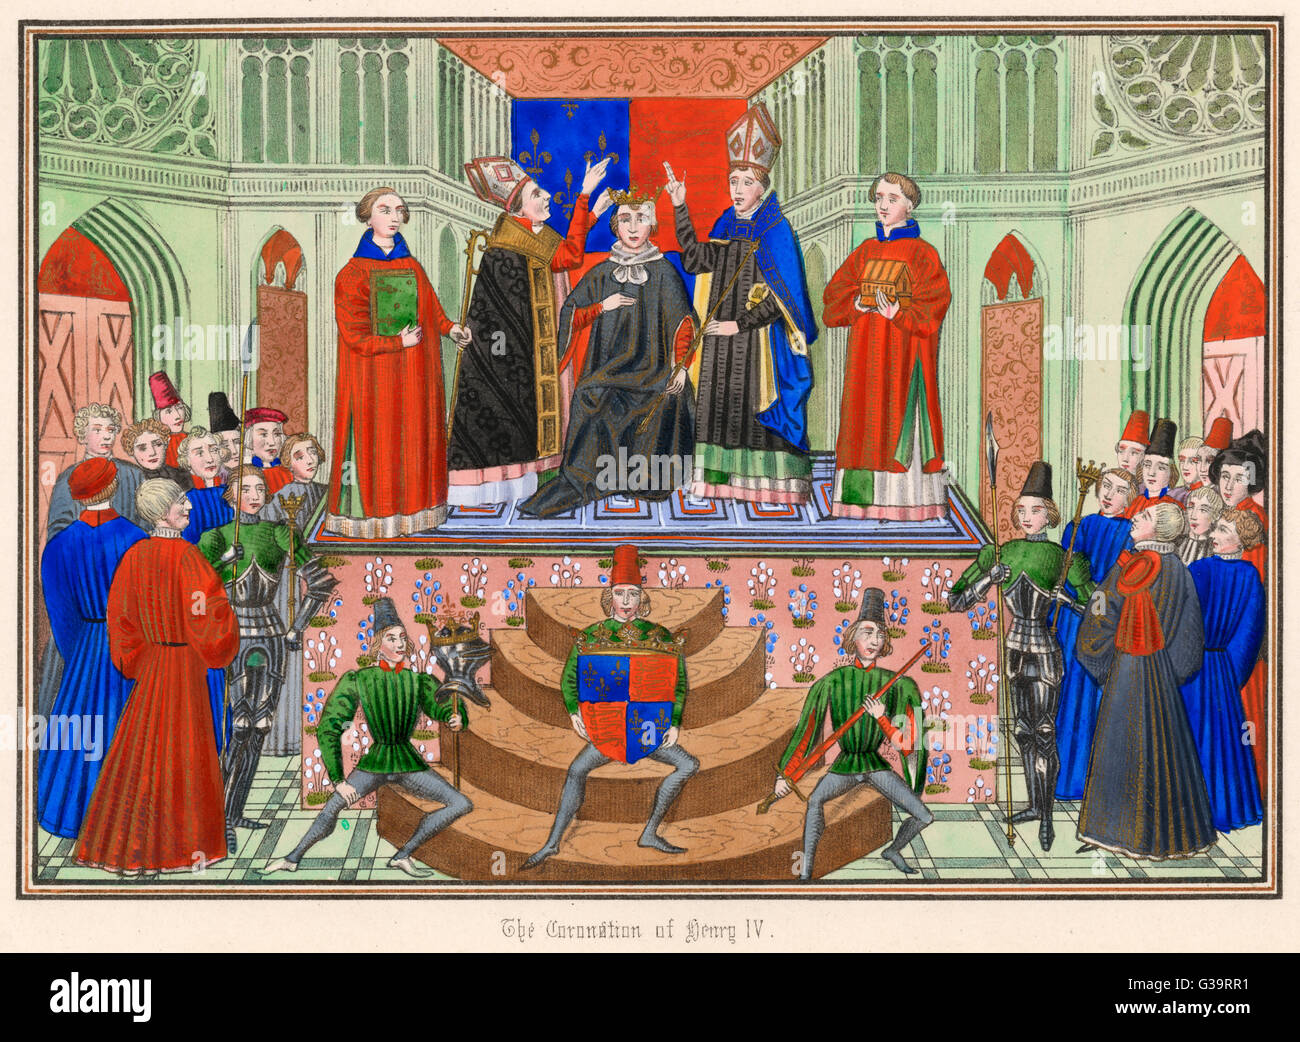 HENRY IV crowned at Westminster         Date: 13 October 1399 - Stock Image